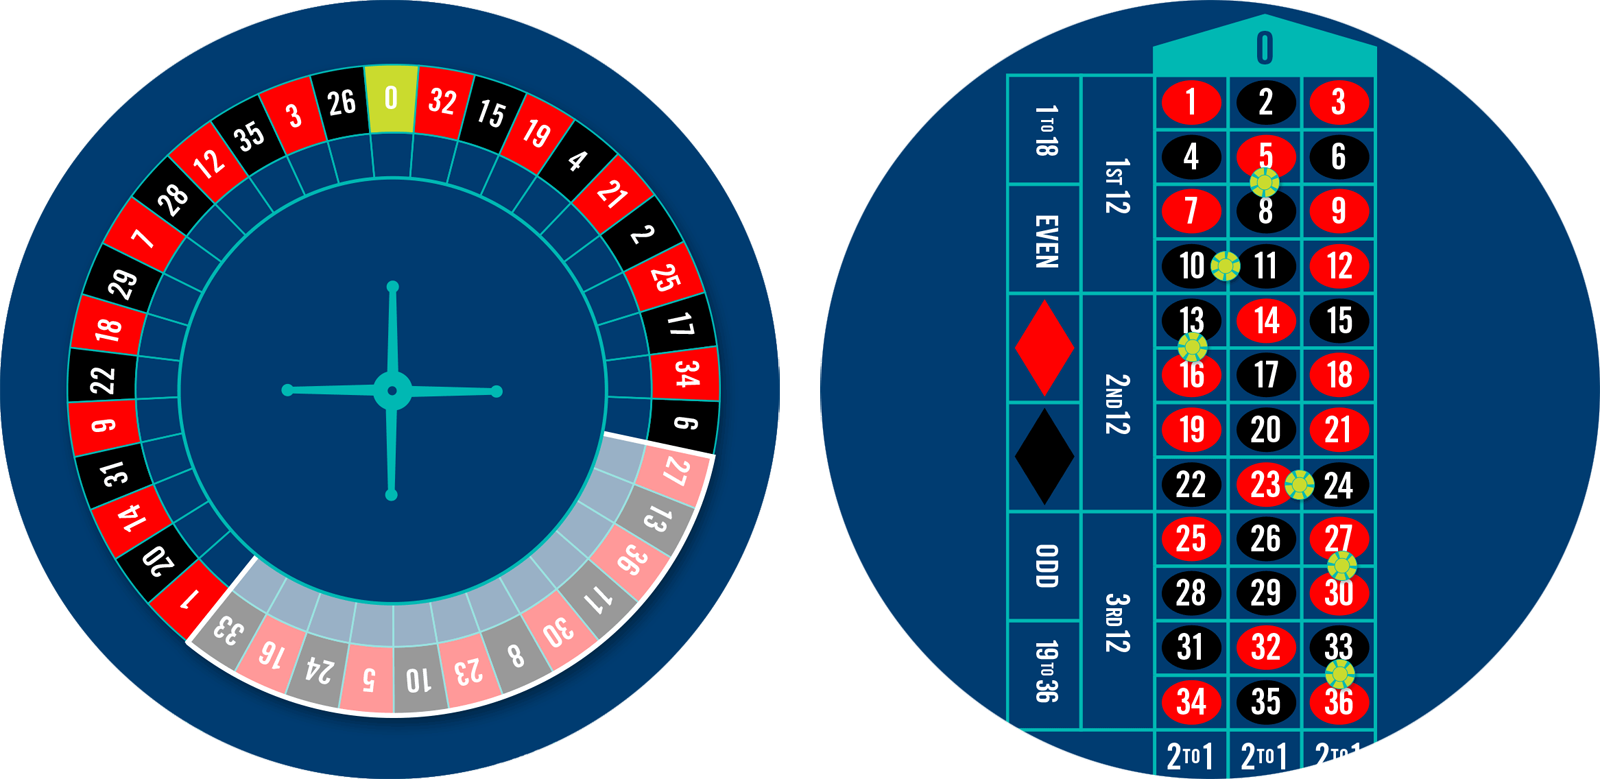 Roulette wheel with tiers bet highlighted, and a roulette table with 6 chips placed for the tiers bets.